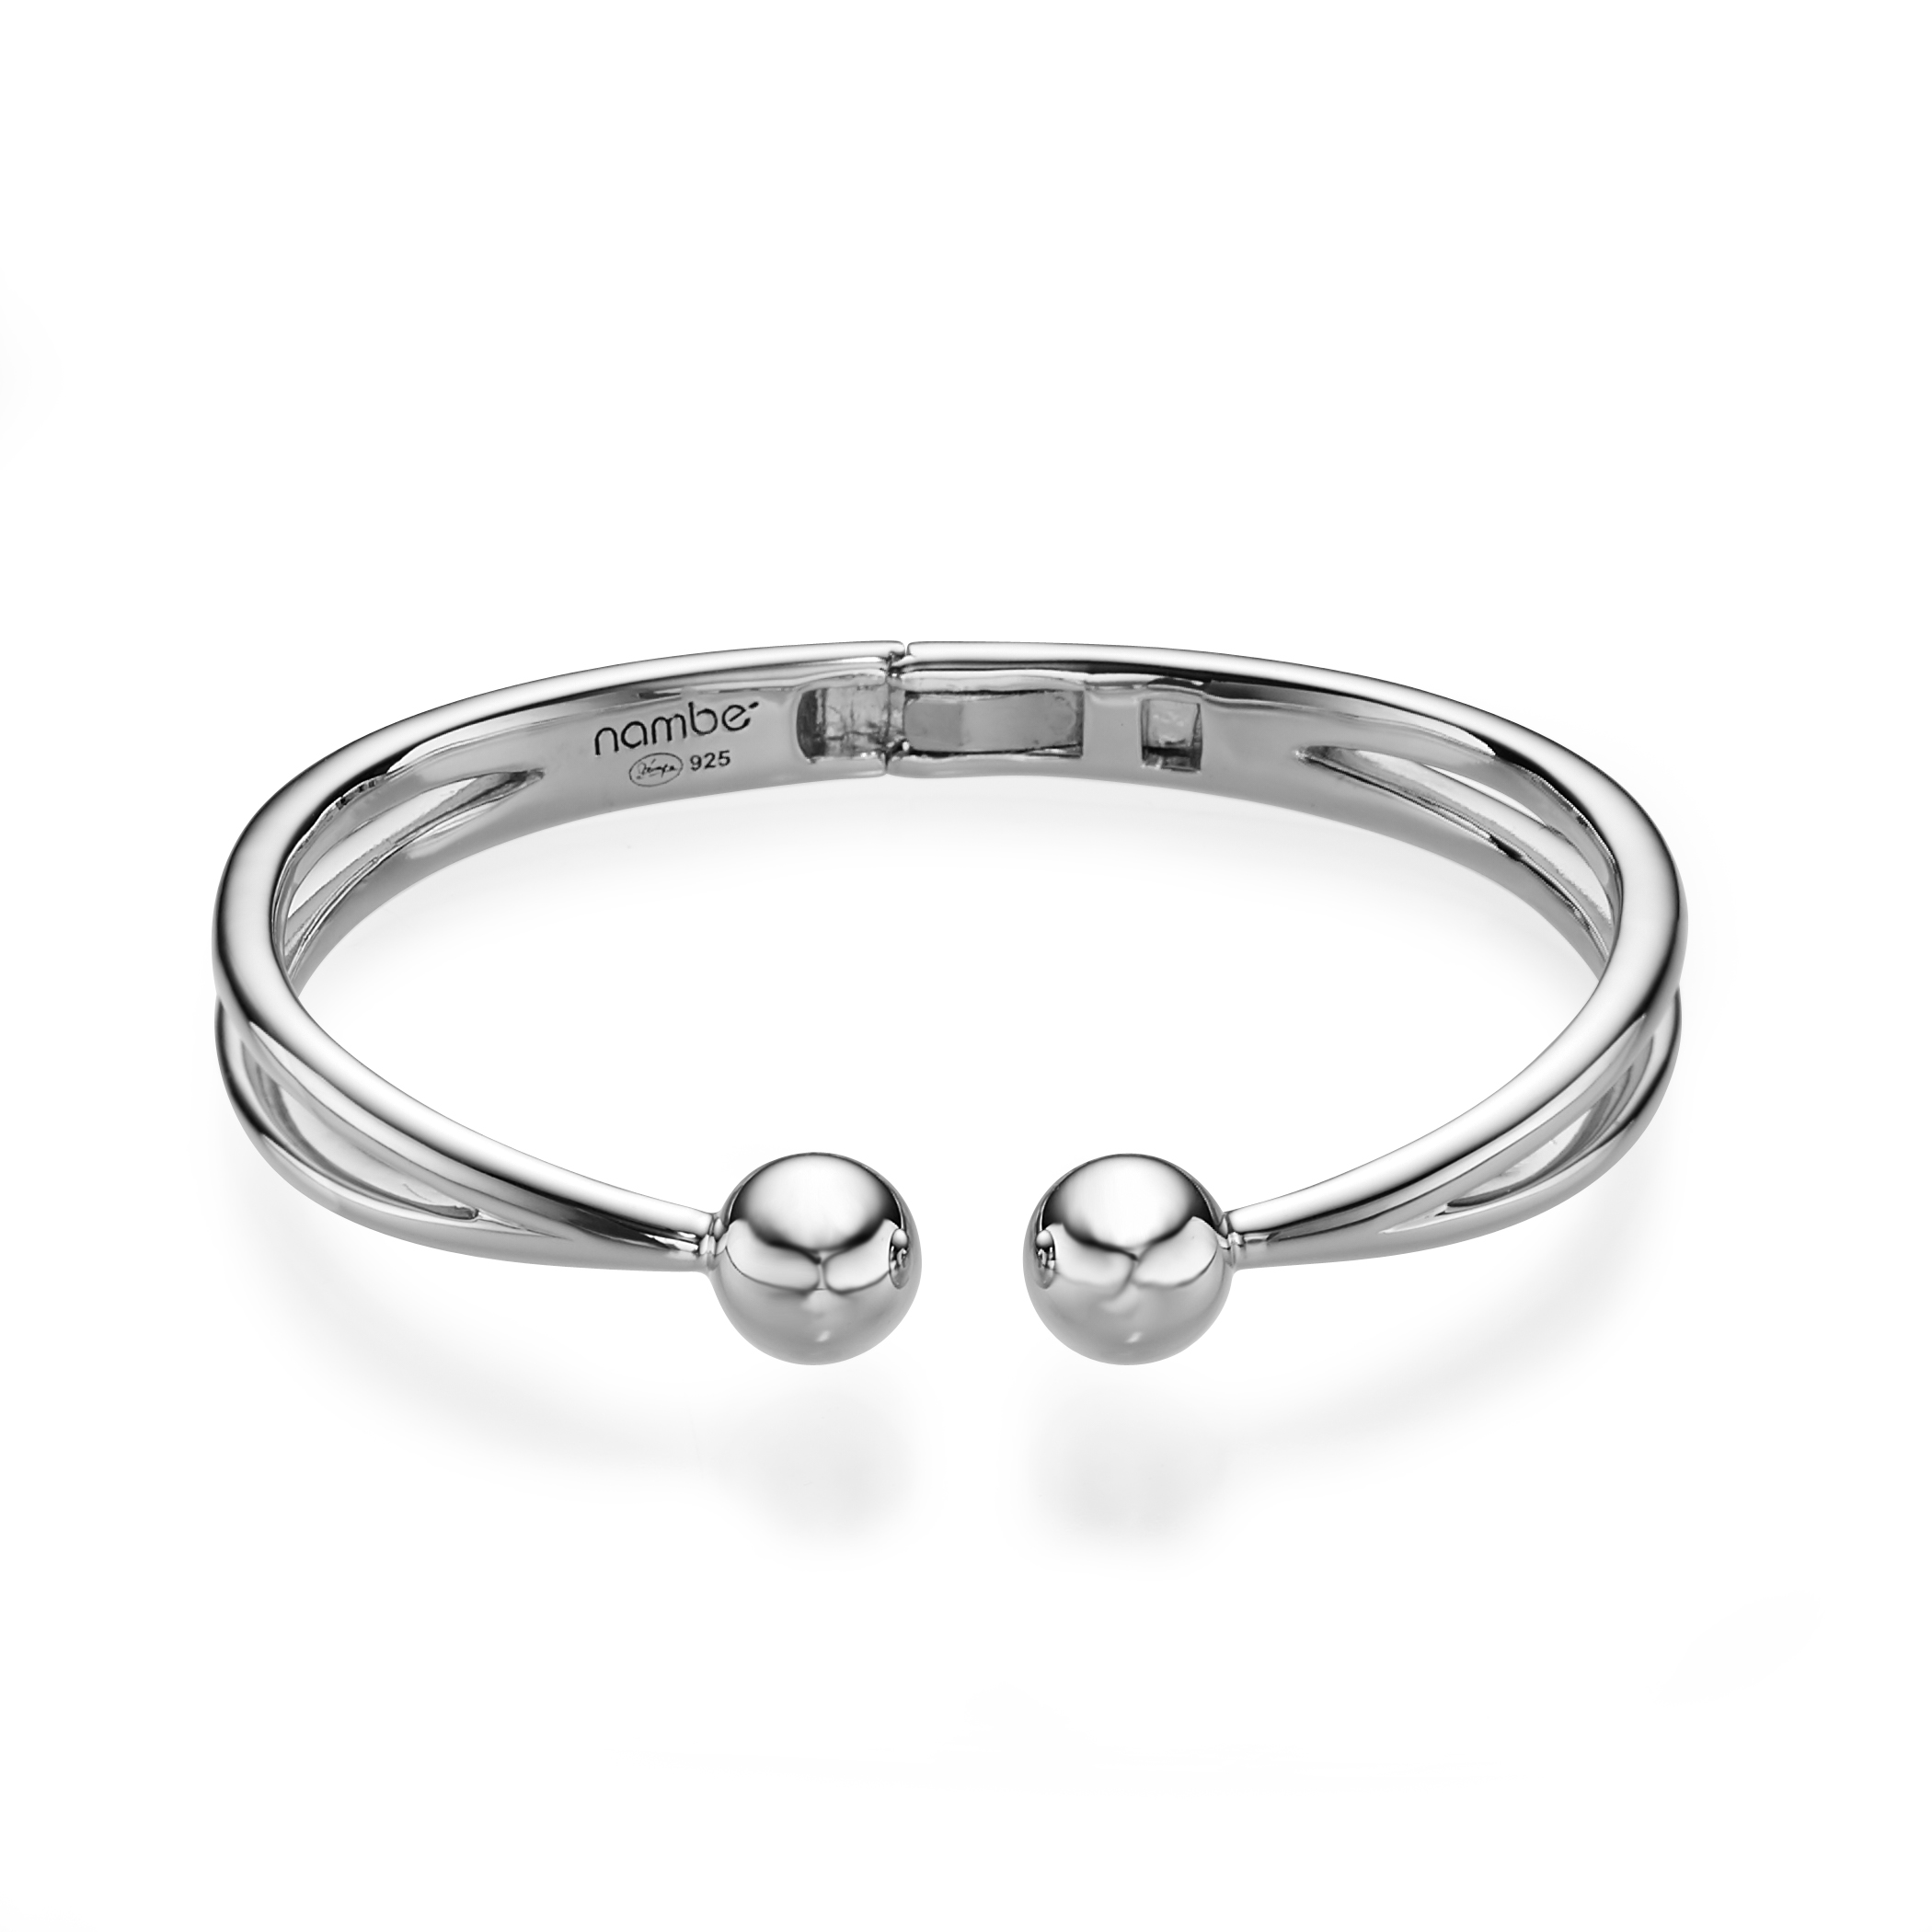 Rain Drop Hinged Bangle Bracelet image number 1